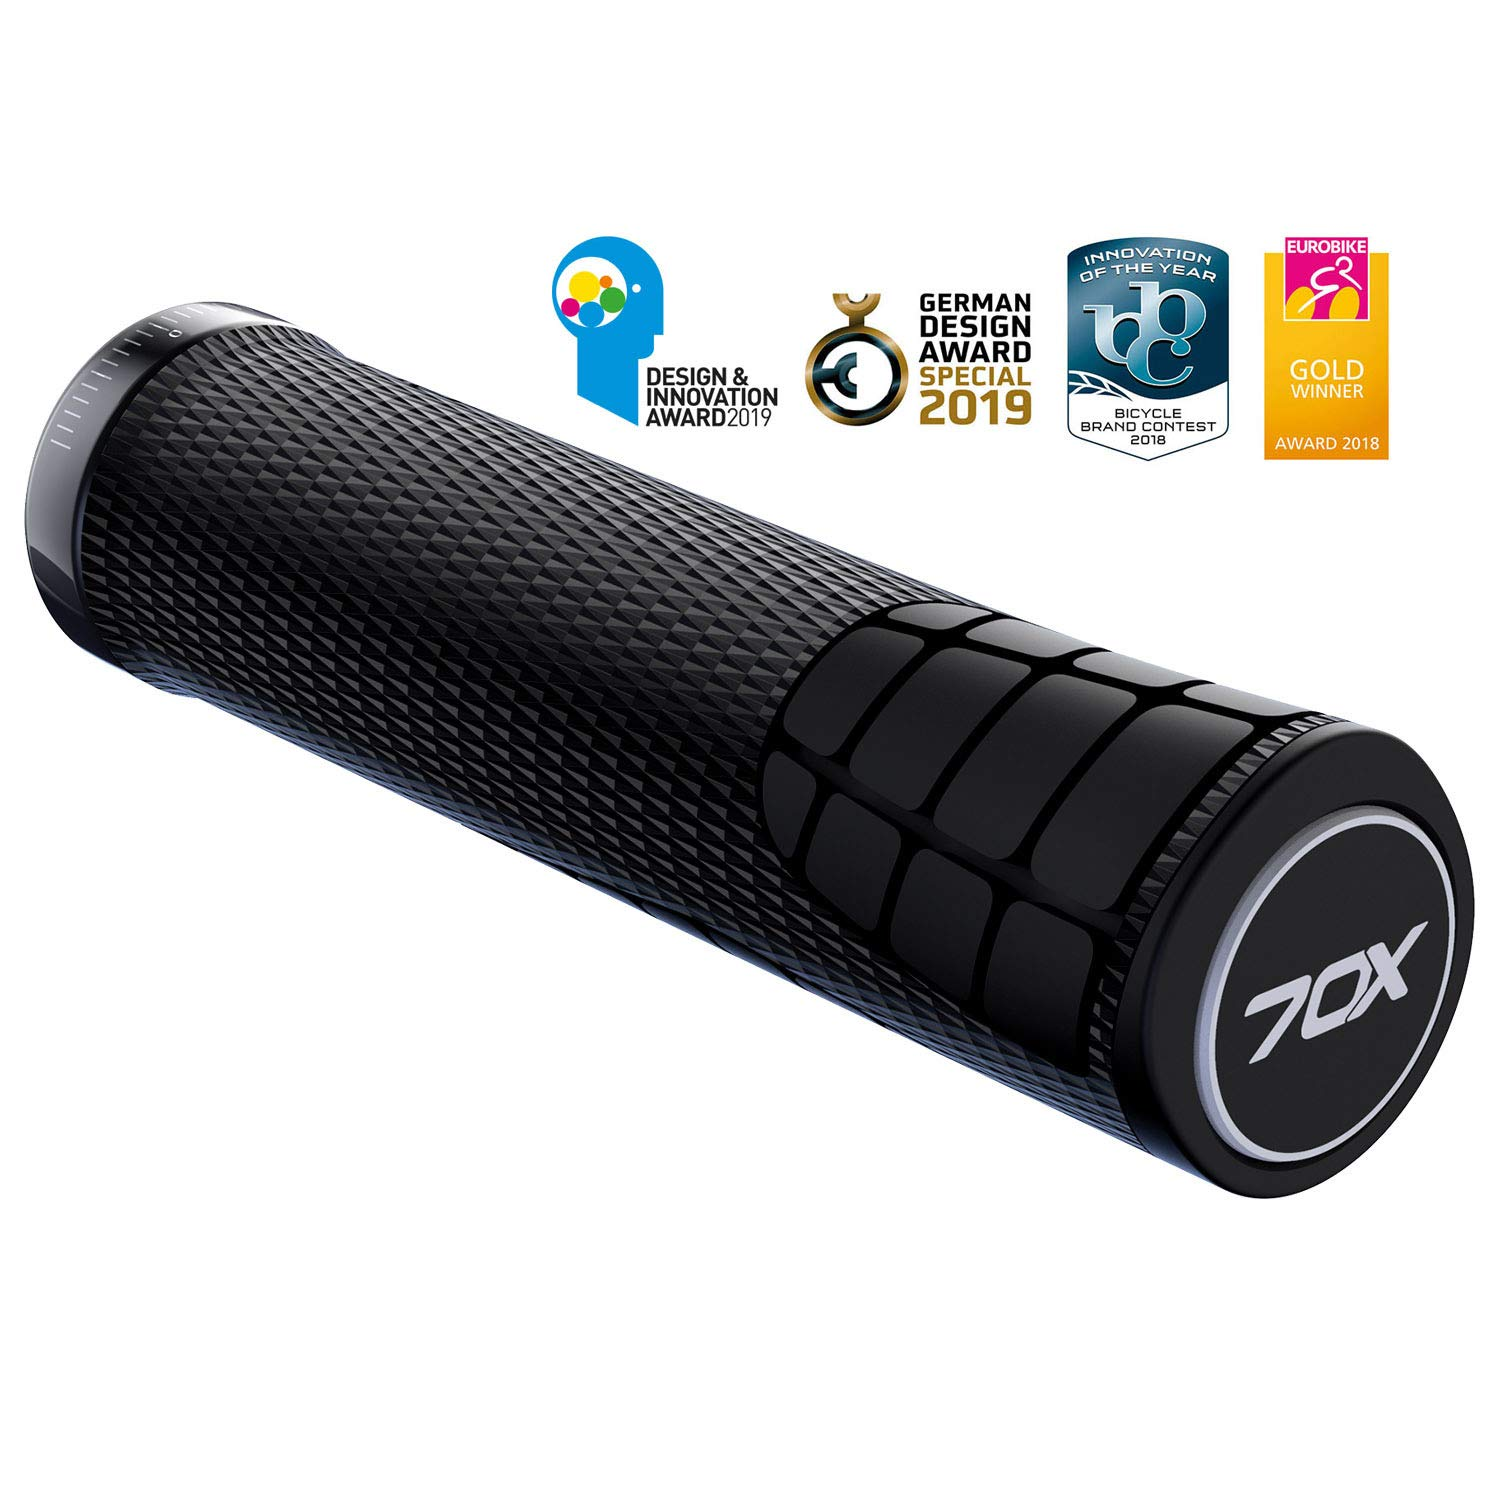 SQlab 7OX Gravity/Performance Bicycle Handlebar Grips